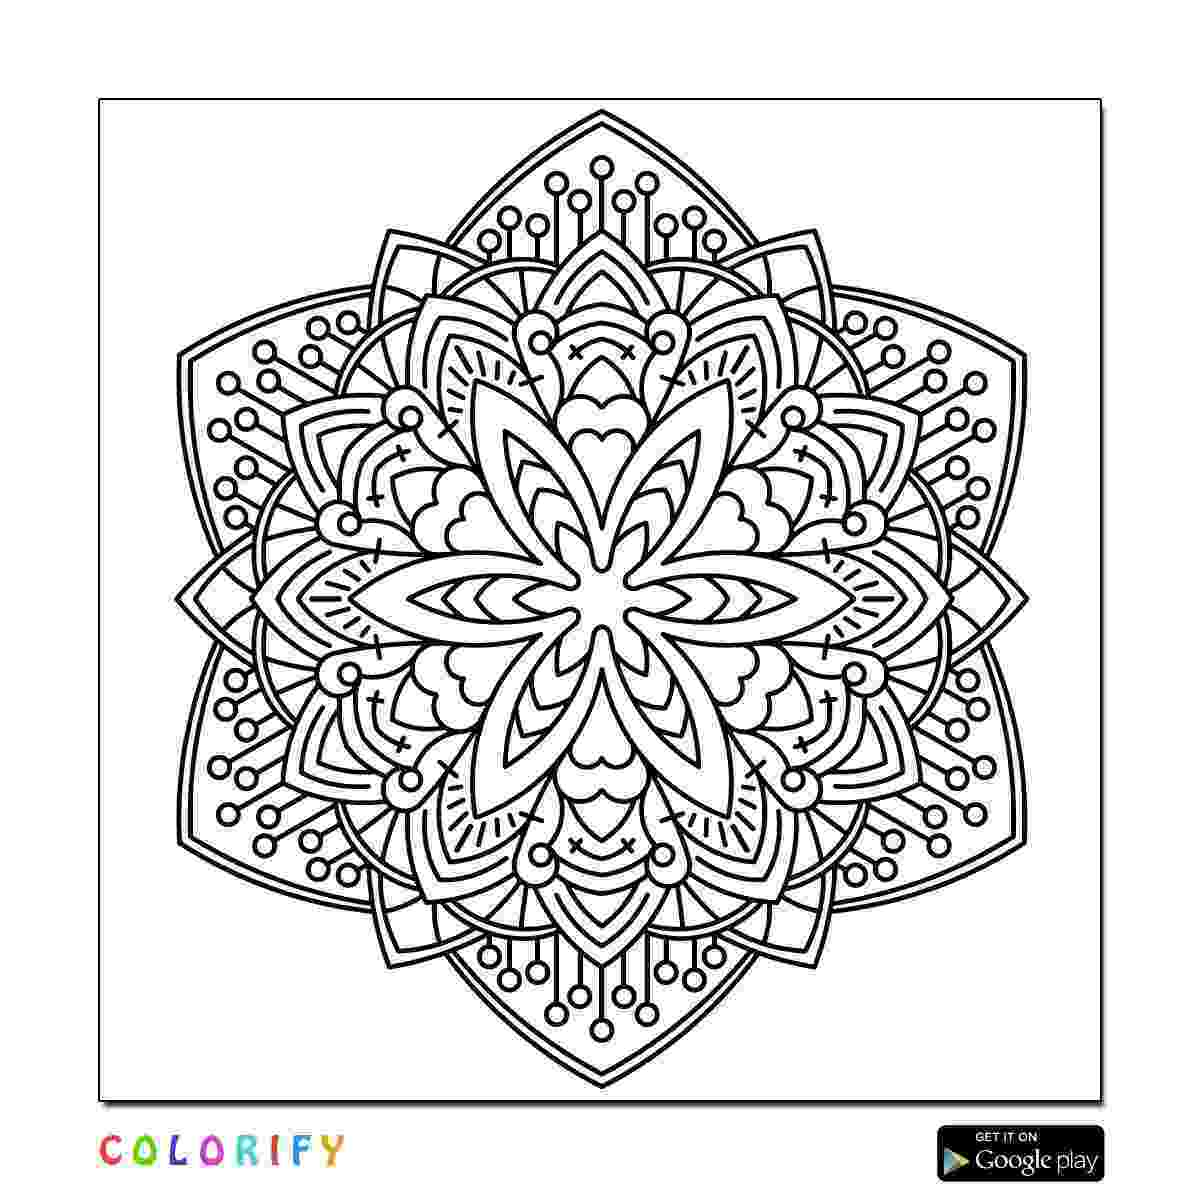 intricate coloring pages 29 intricate mandala coloring pages collection coloring pages intricate coloring